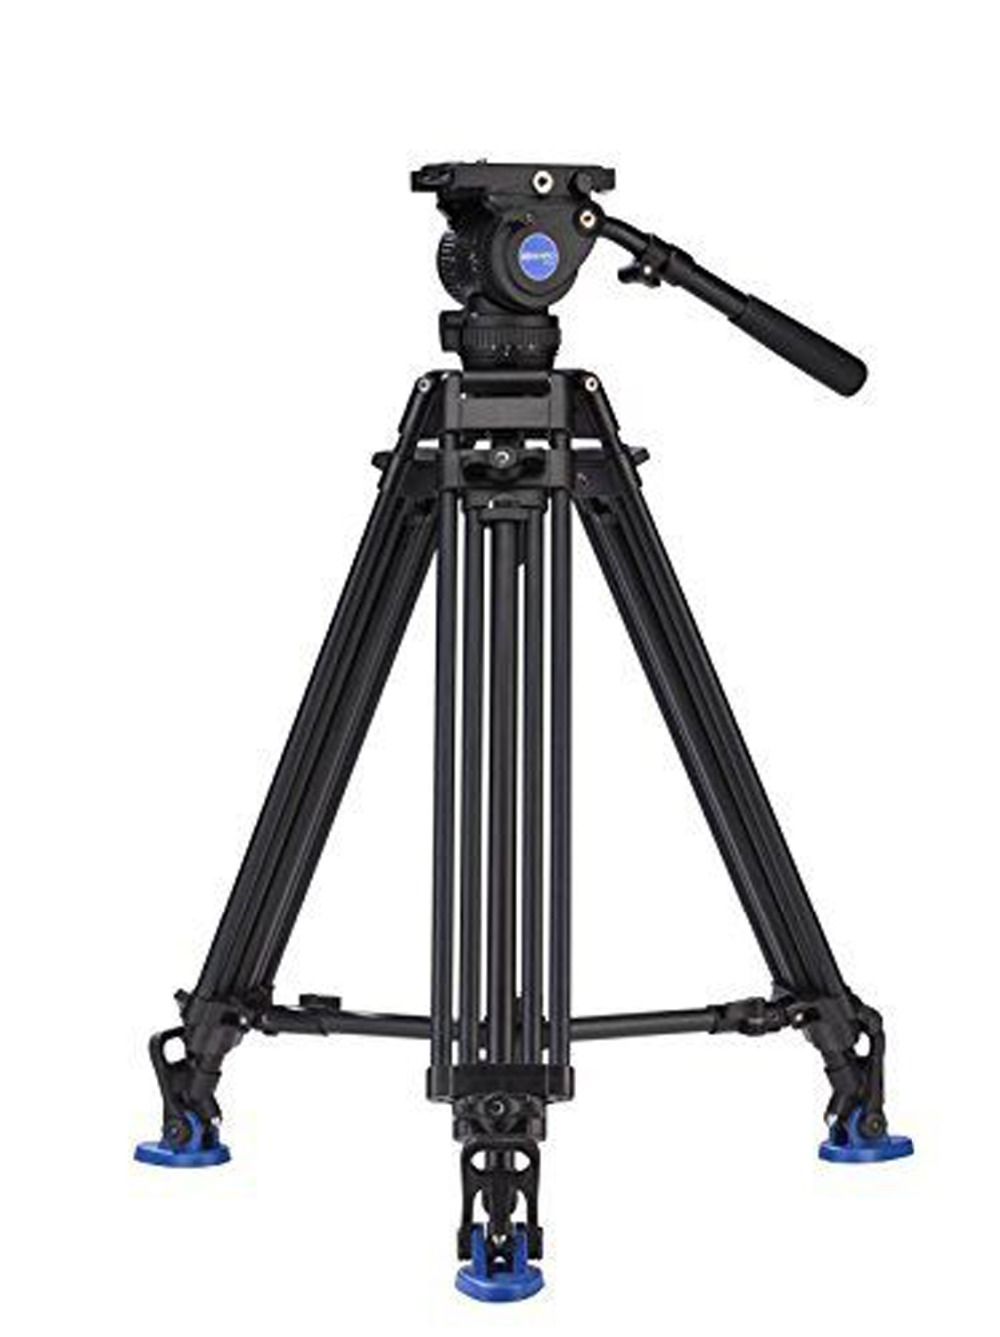 New Film Tripod Video Camera Stabilizer benro bv8 Professional Support For Television Camcorder Aluminum High Quality new sys700 aluminum professional tripod